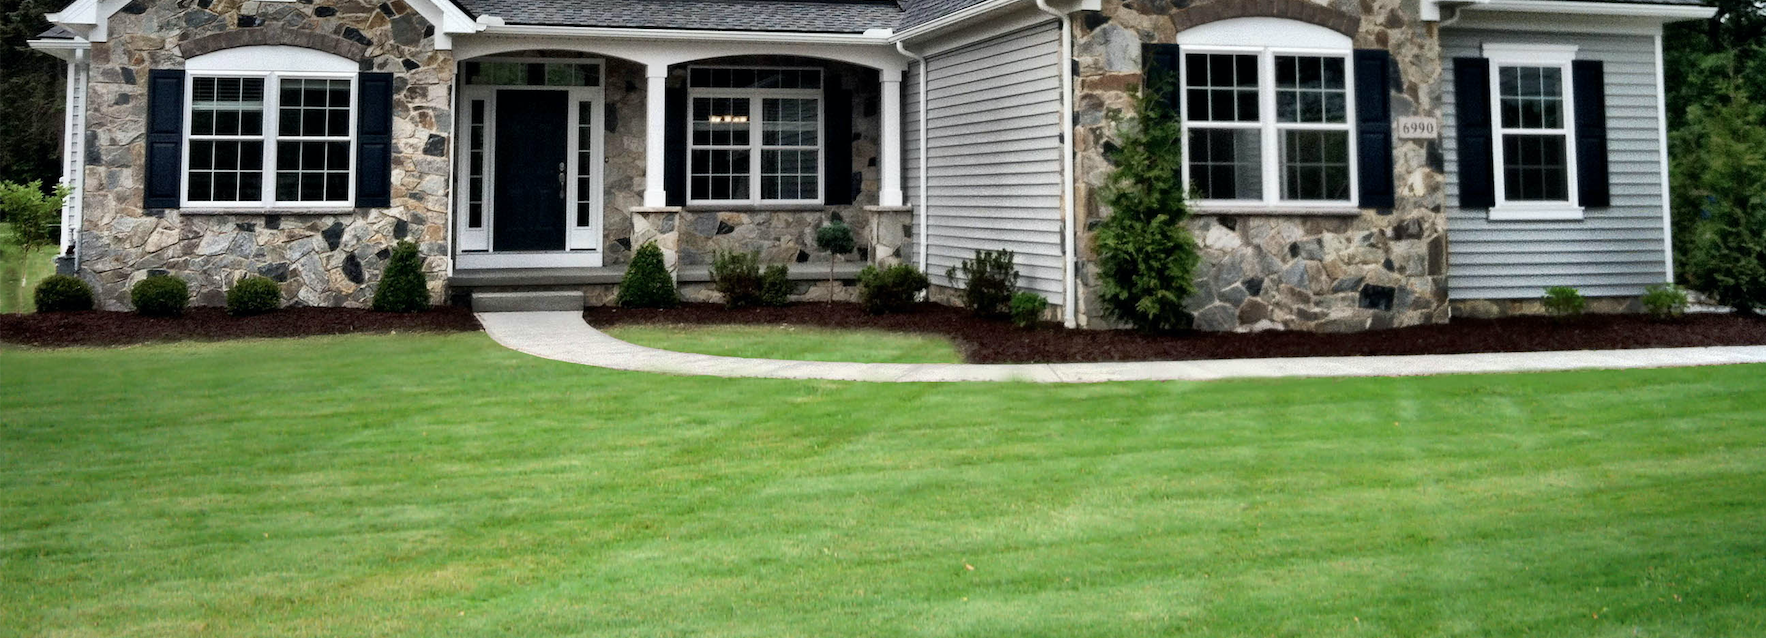 Fast and Free Lawn Care Quotes - Cleanups. Mulching. Mowing. Fertilizing.